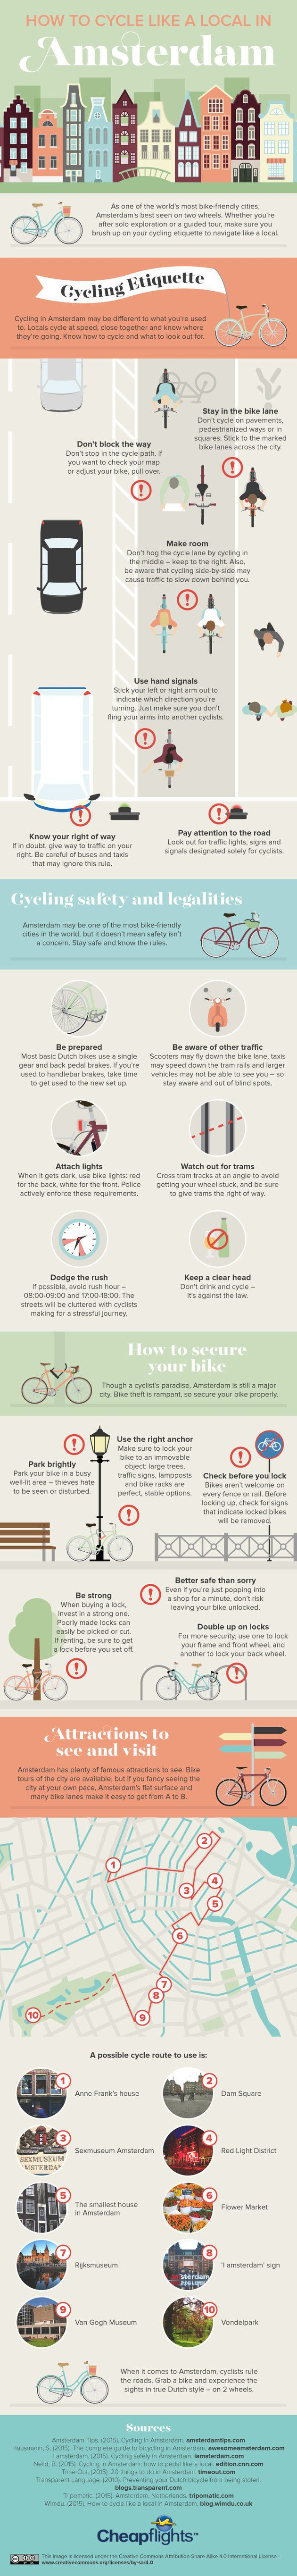 How to survive biking in Amsterdam (or really any major city)HuffPost